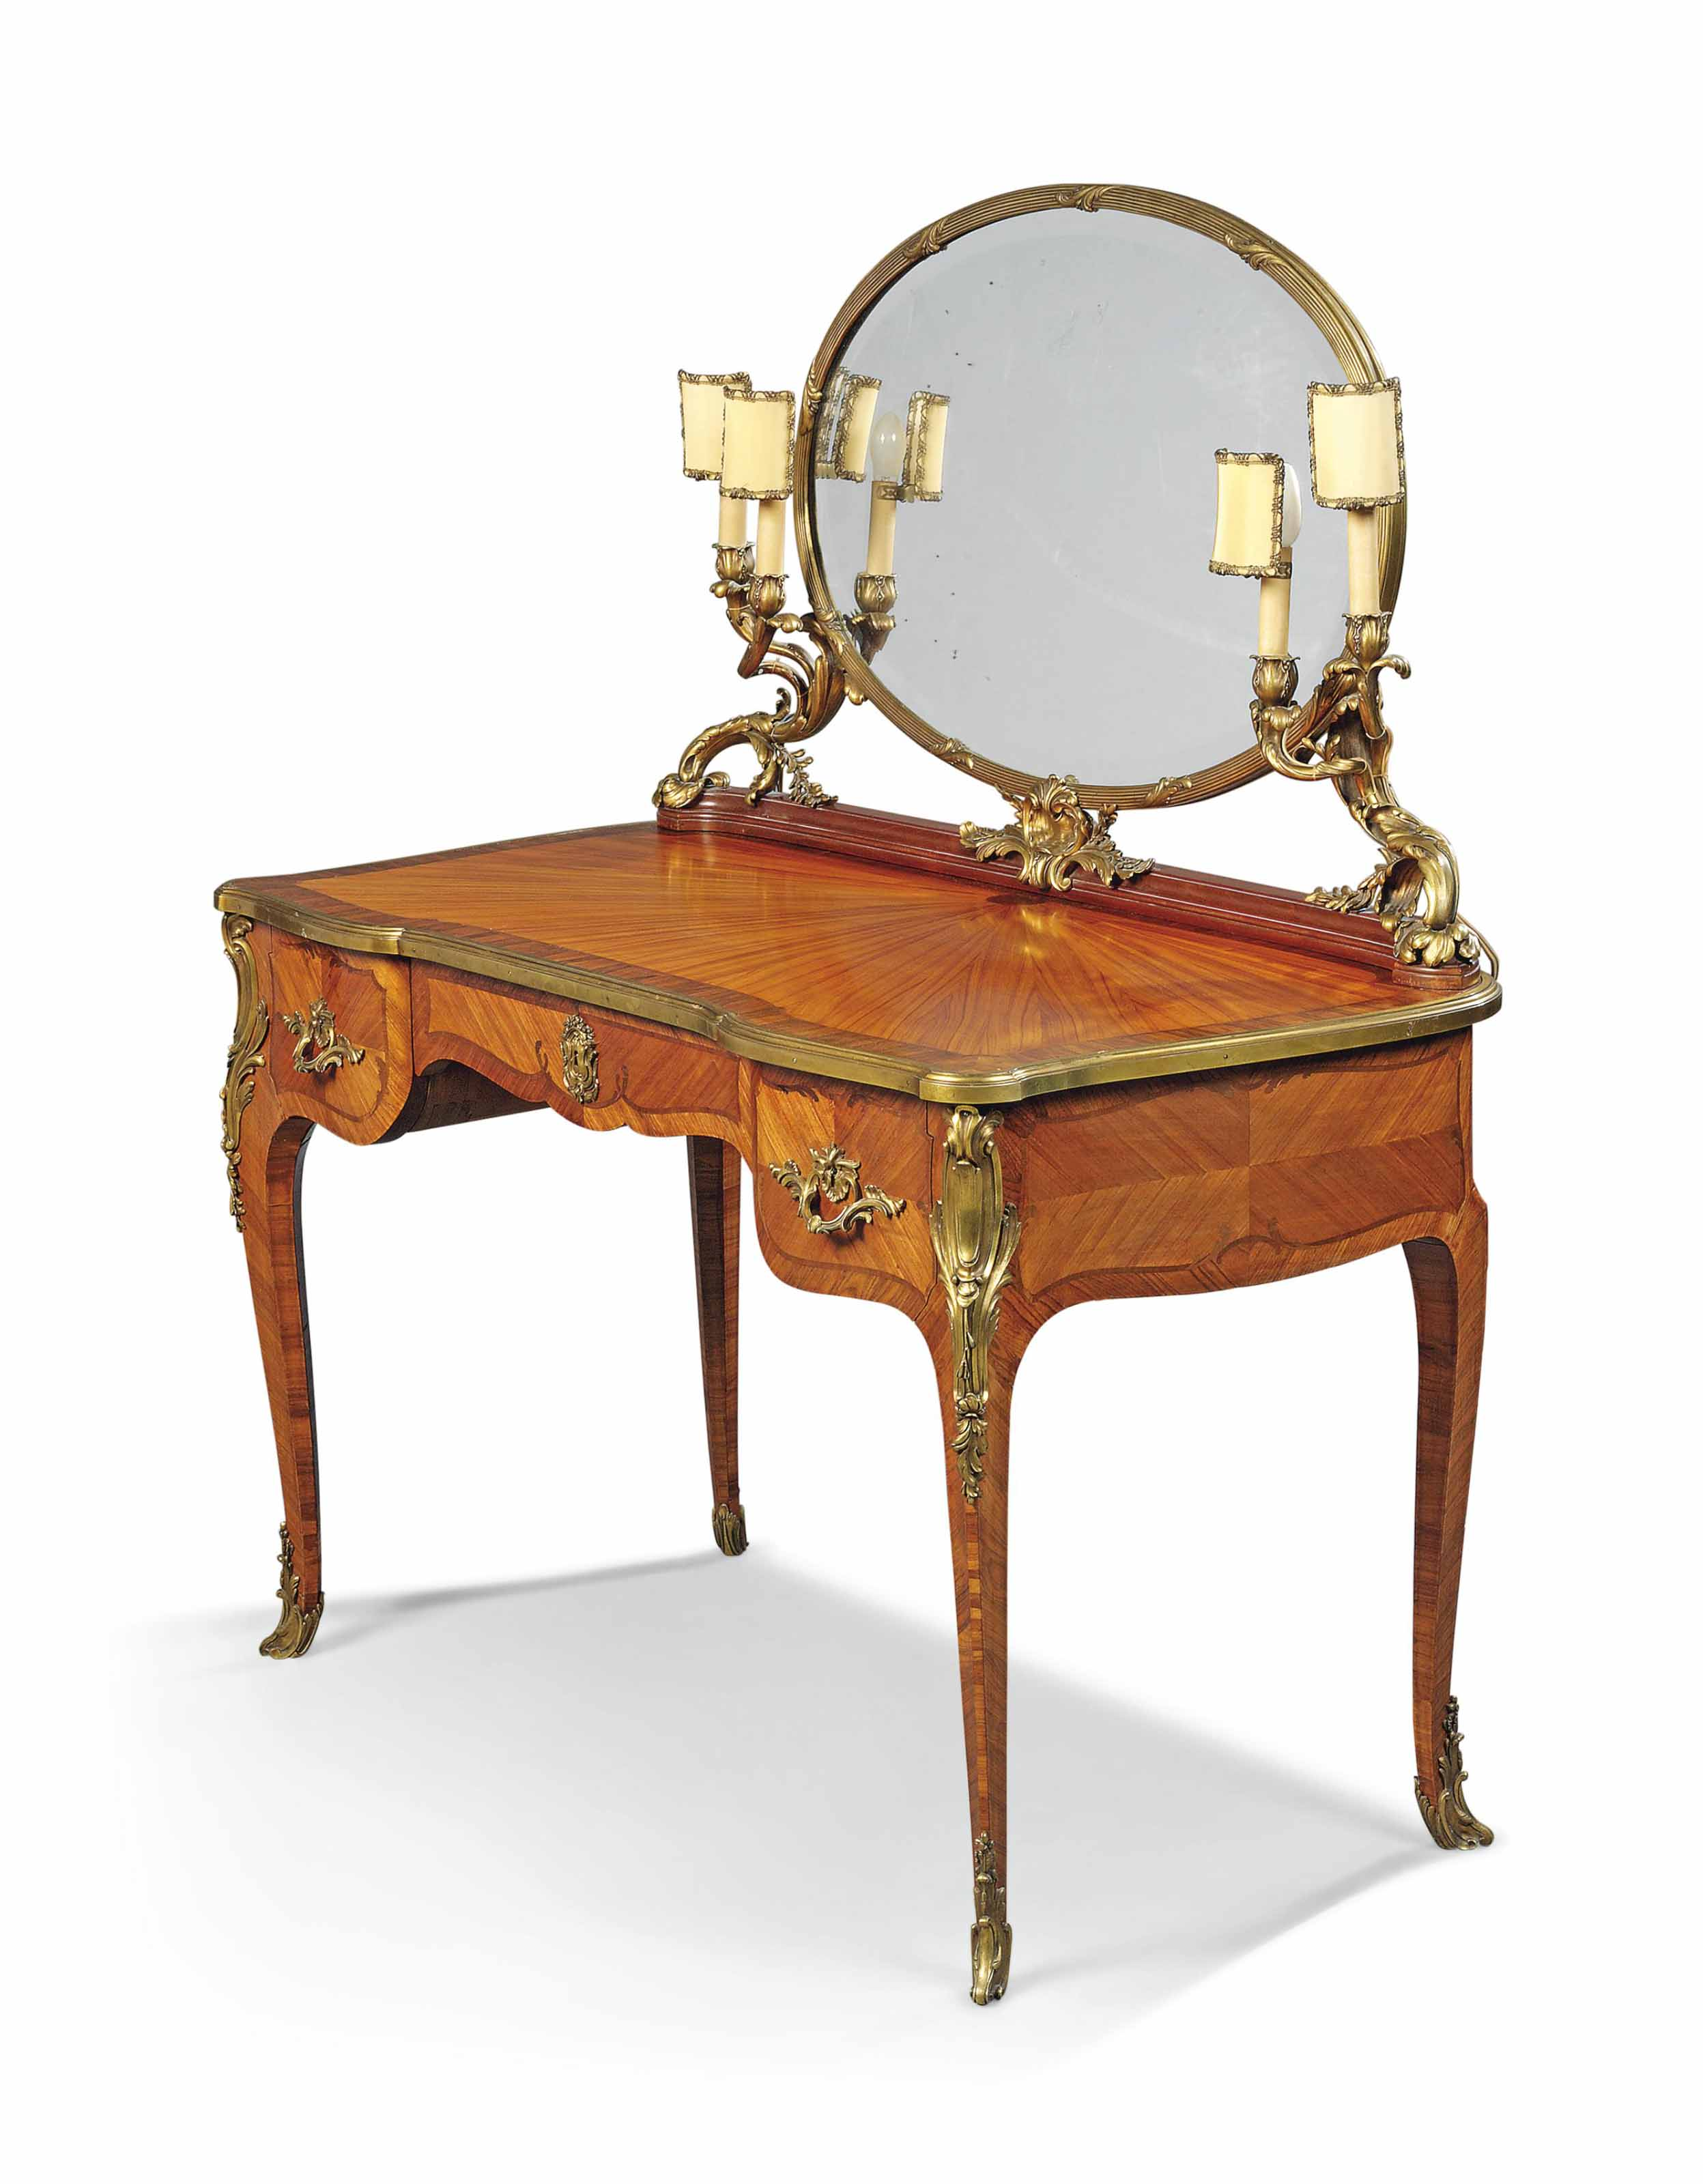 A FRENCH ORMOLU-MOUNTED KINGWOOD, TULIPWOOD AND BOIS SATINE DRESSING TABLE